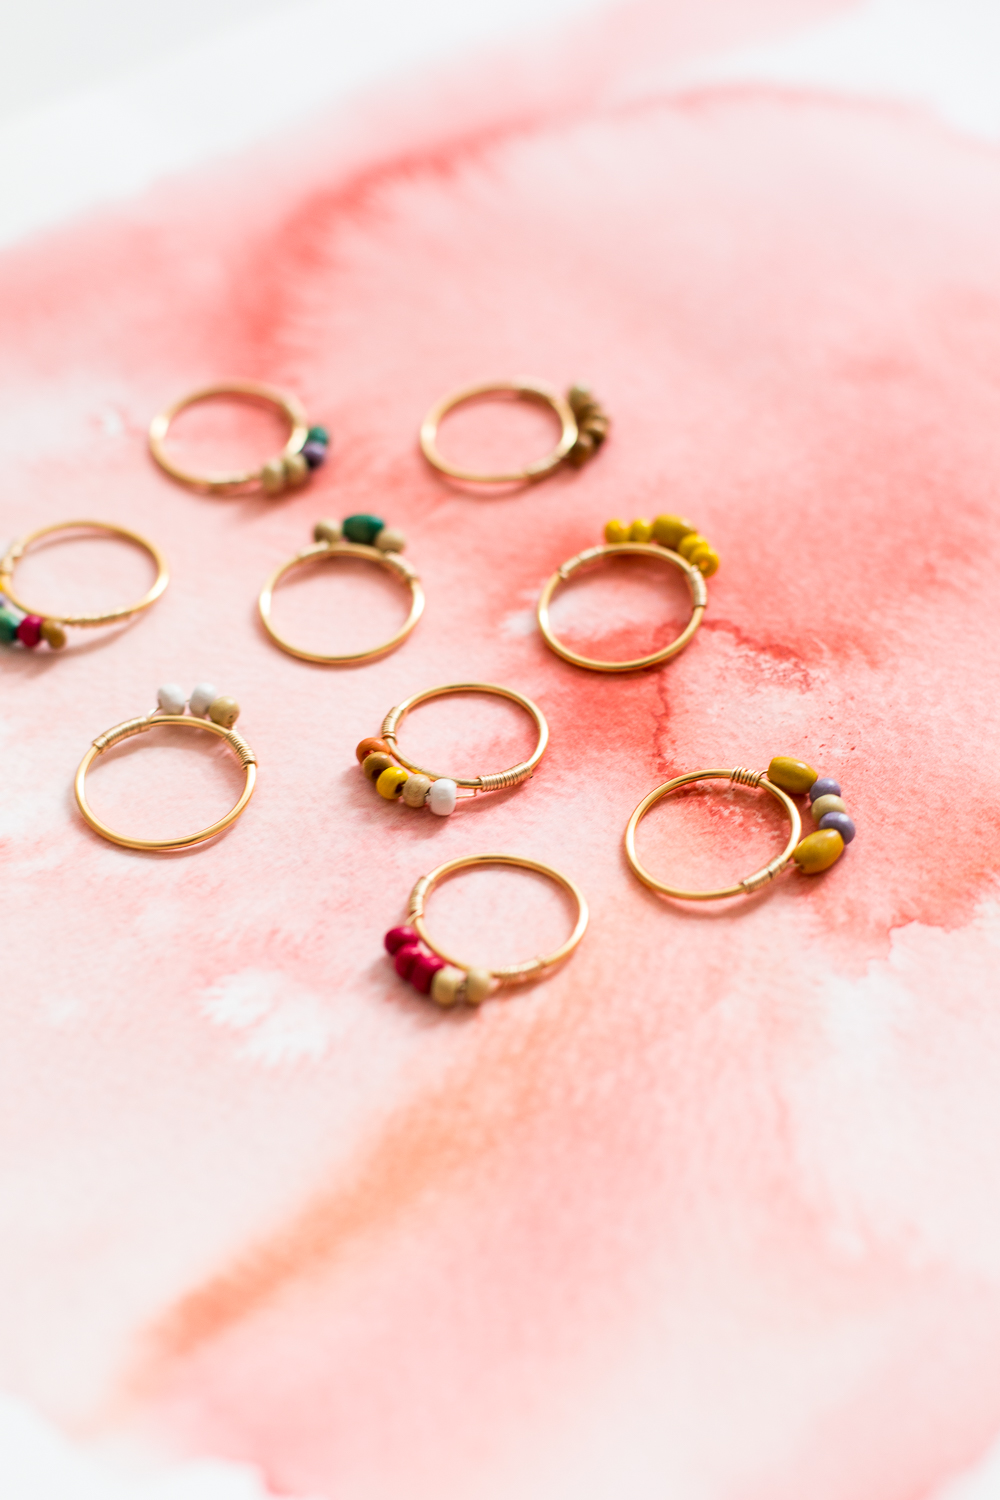 DIY Mini Beaded Rings | @fallfordiy